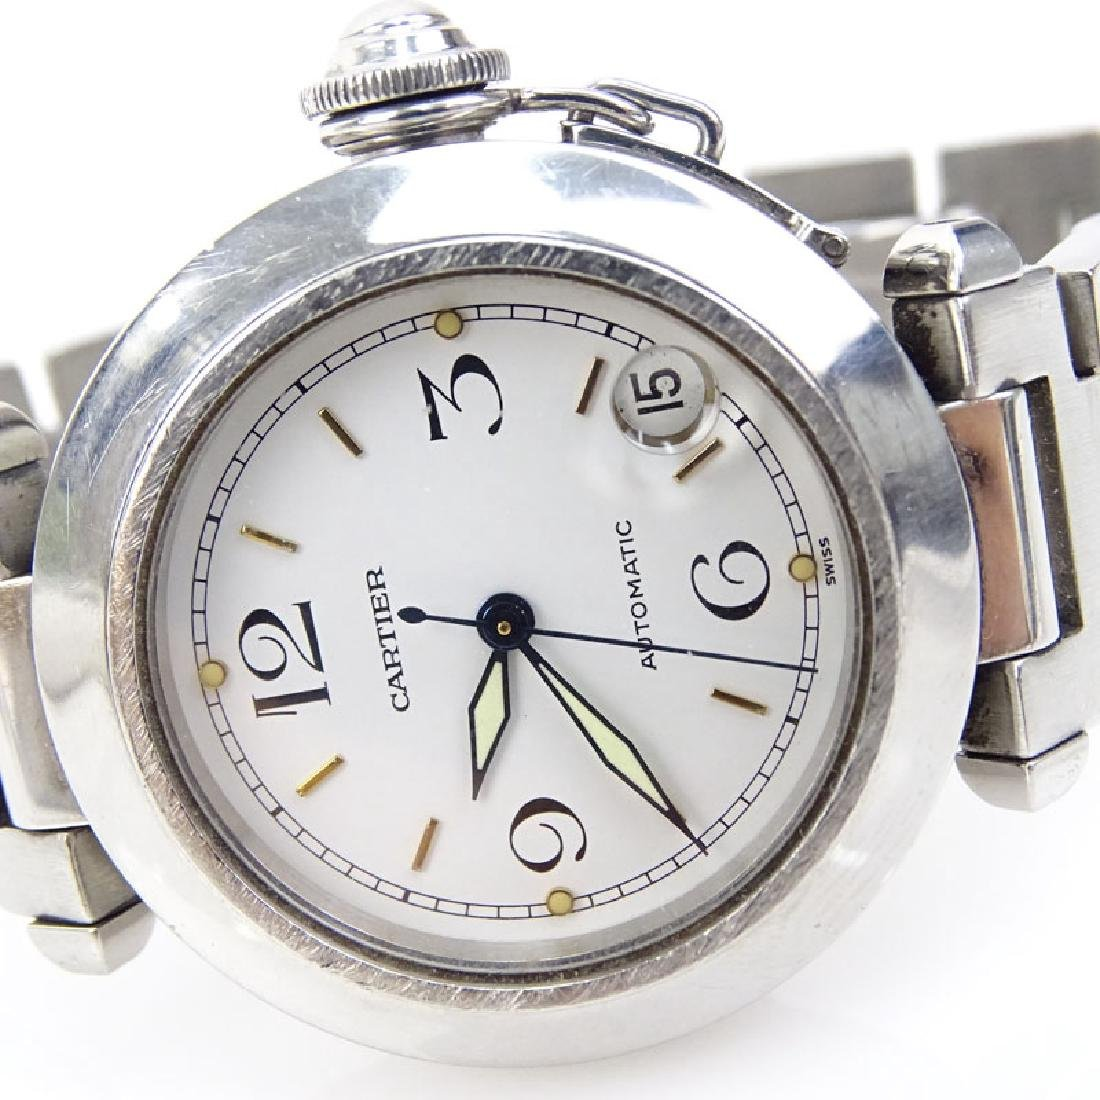 Man's Cartier Pasha Stainless Steel Automatic Movement - 3